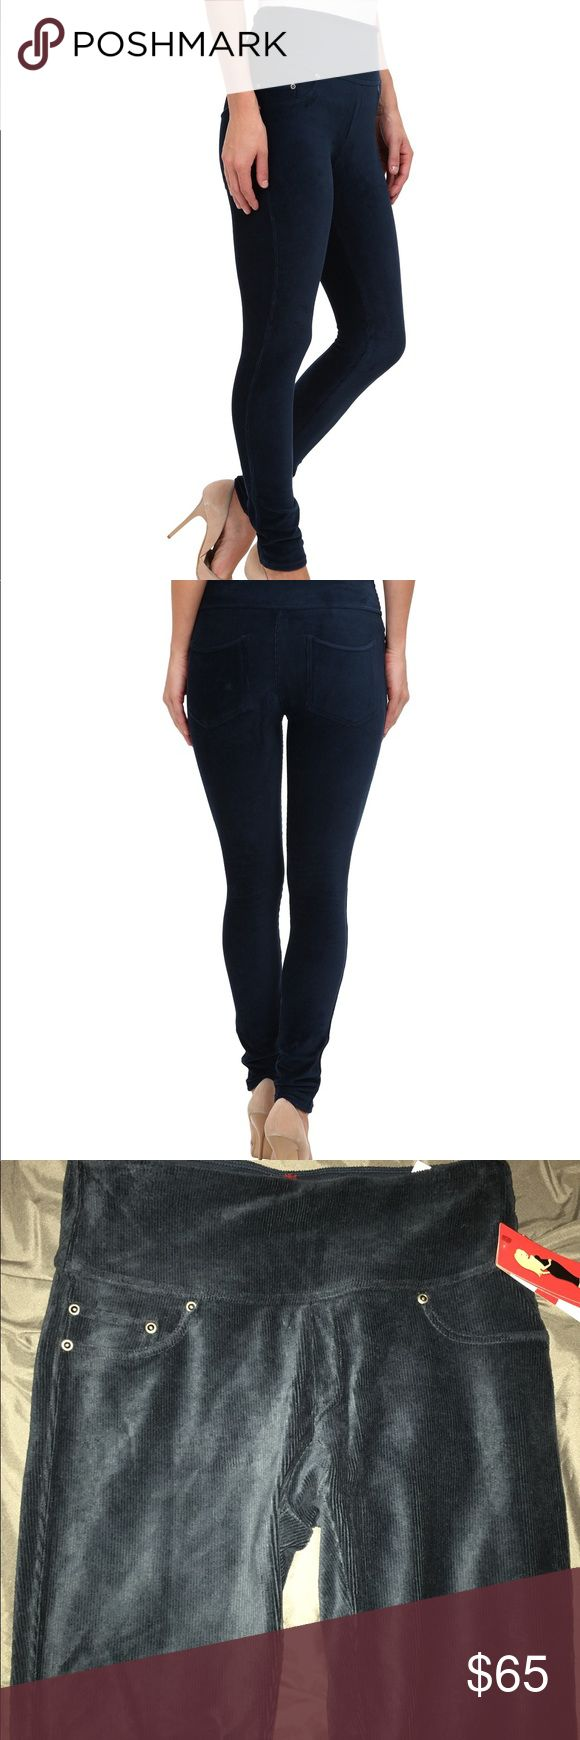 Spanx blue cords ultra slimming leggings NWT Spanx blue cords ultra slimming leggings. SPANX Pants Leggings